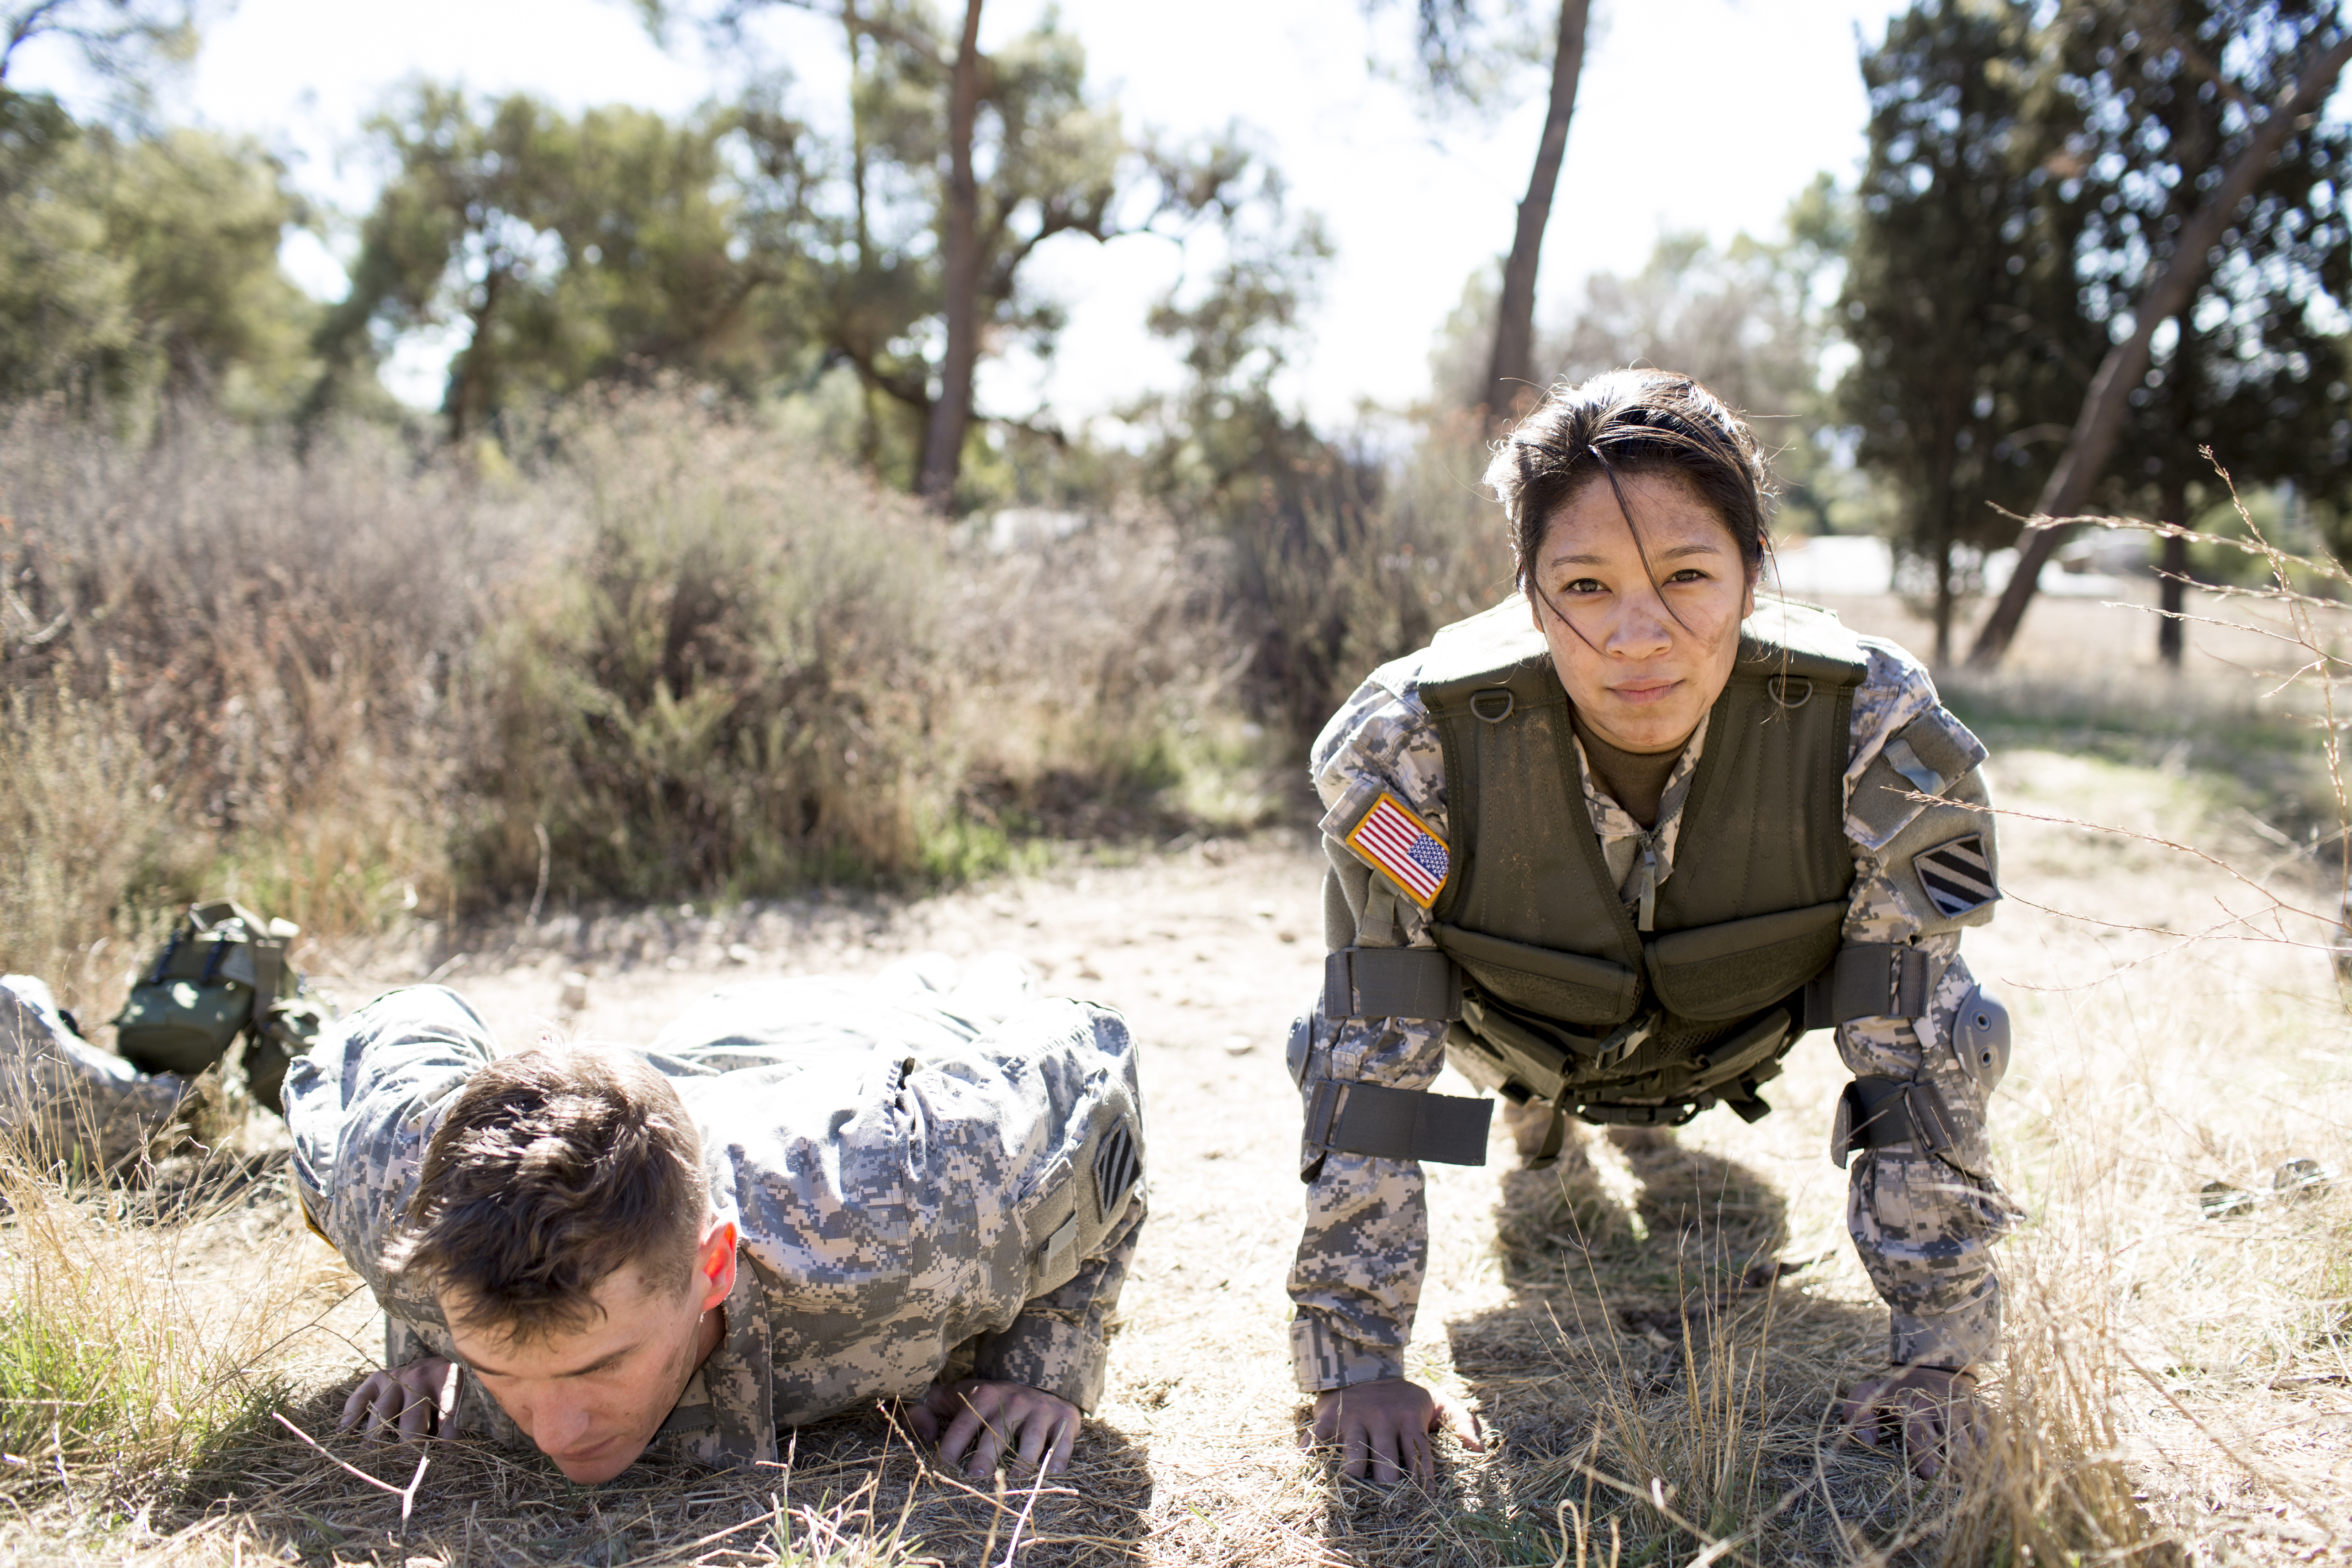 Basic Training Photos >> How Do They Decide Where You Go For Basic Training When You Join The